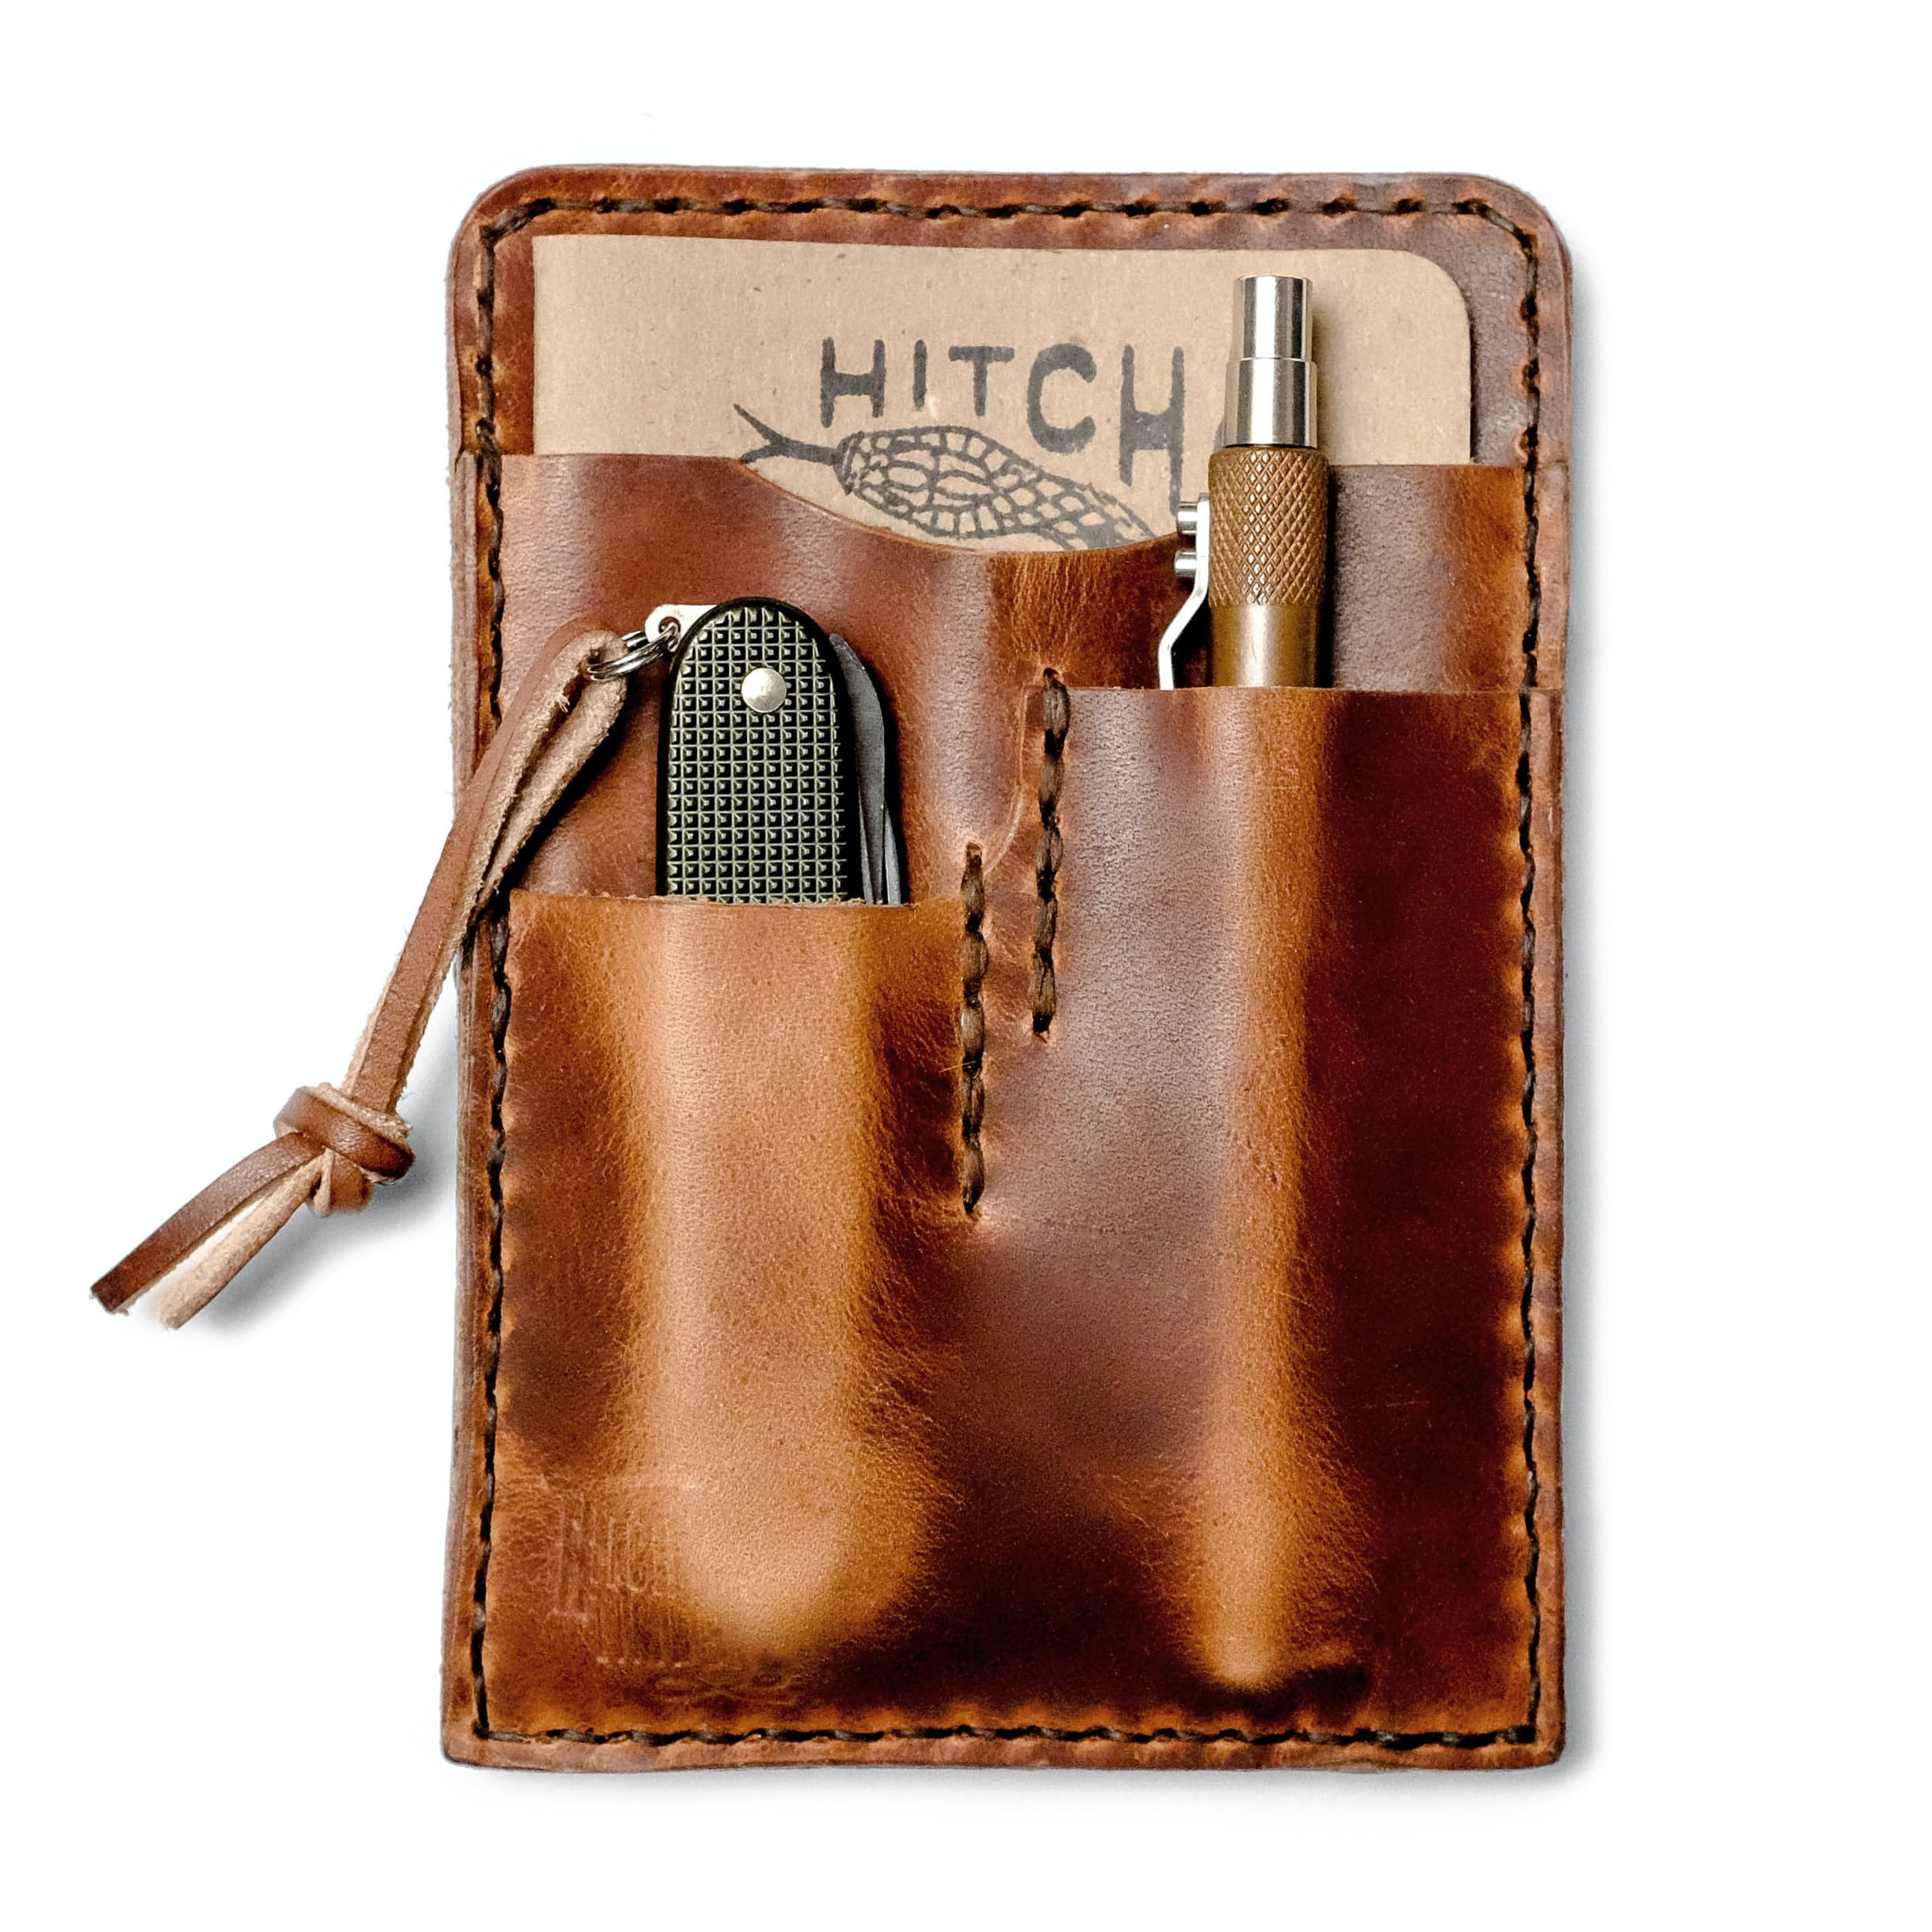 Fviqodfjem hitch timber notes caddy 2.0 wallet 0 original